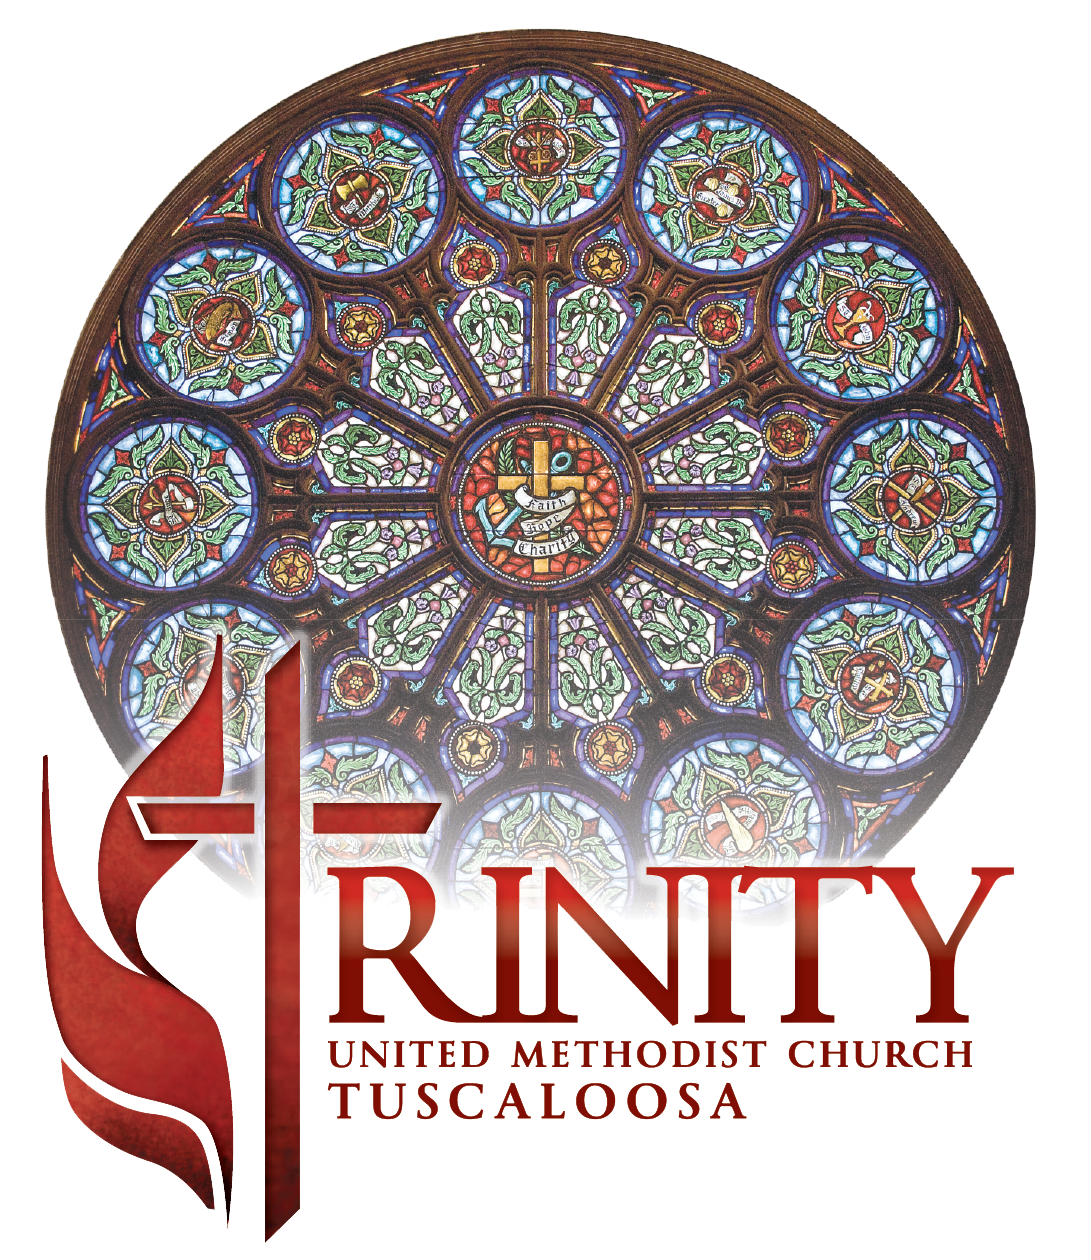 Methodist church png. Cropped trinity logo with